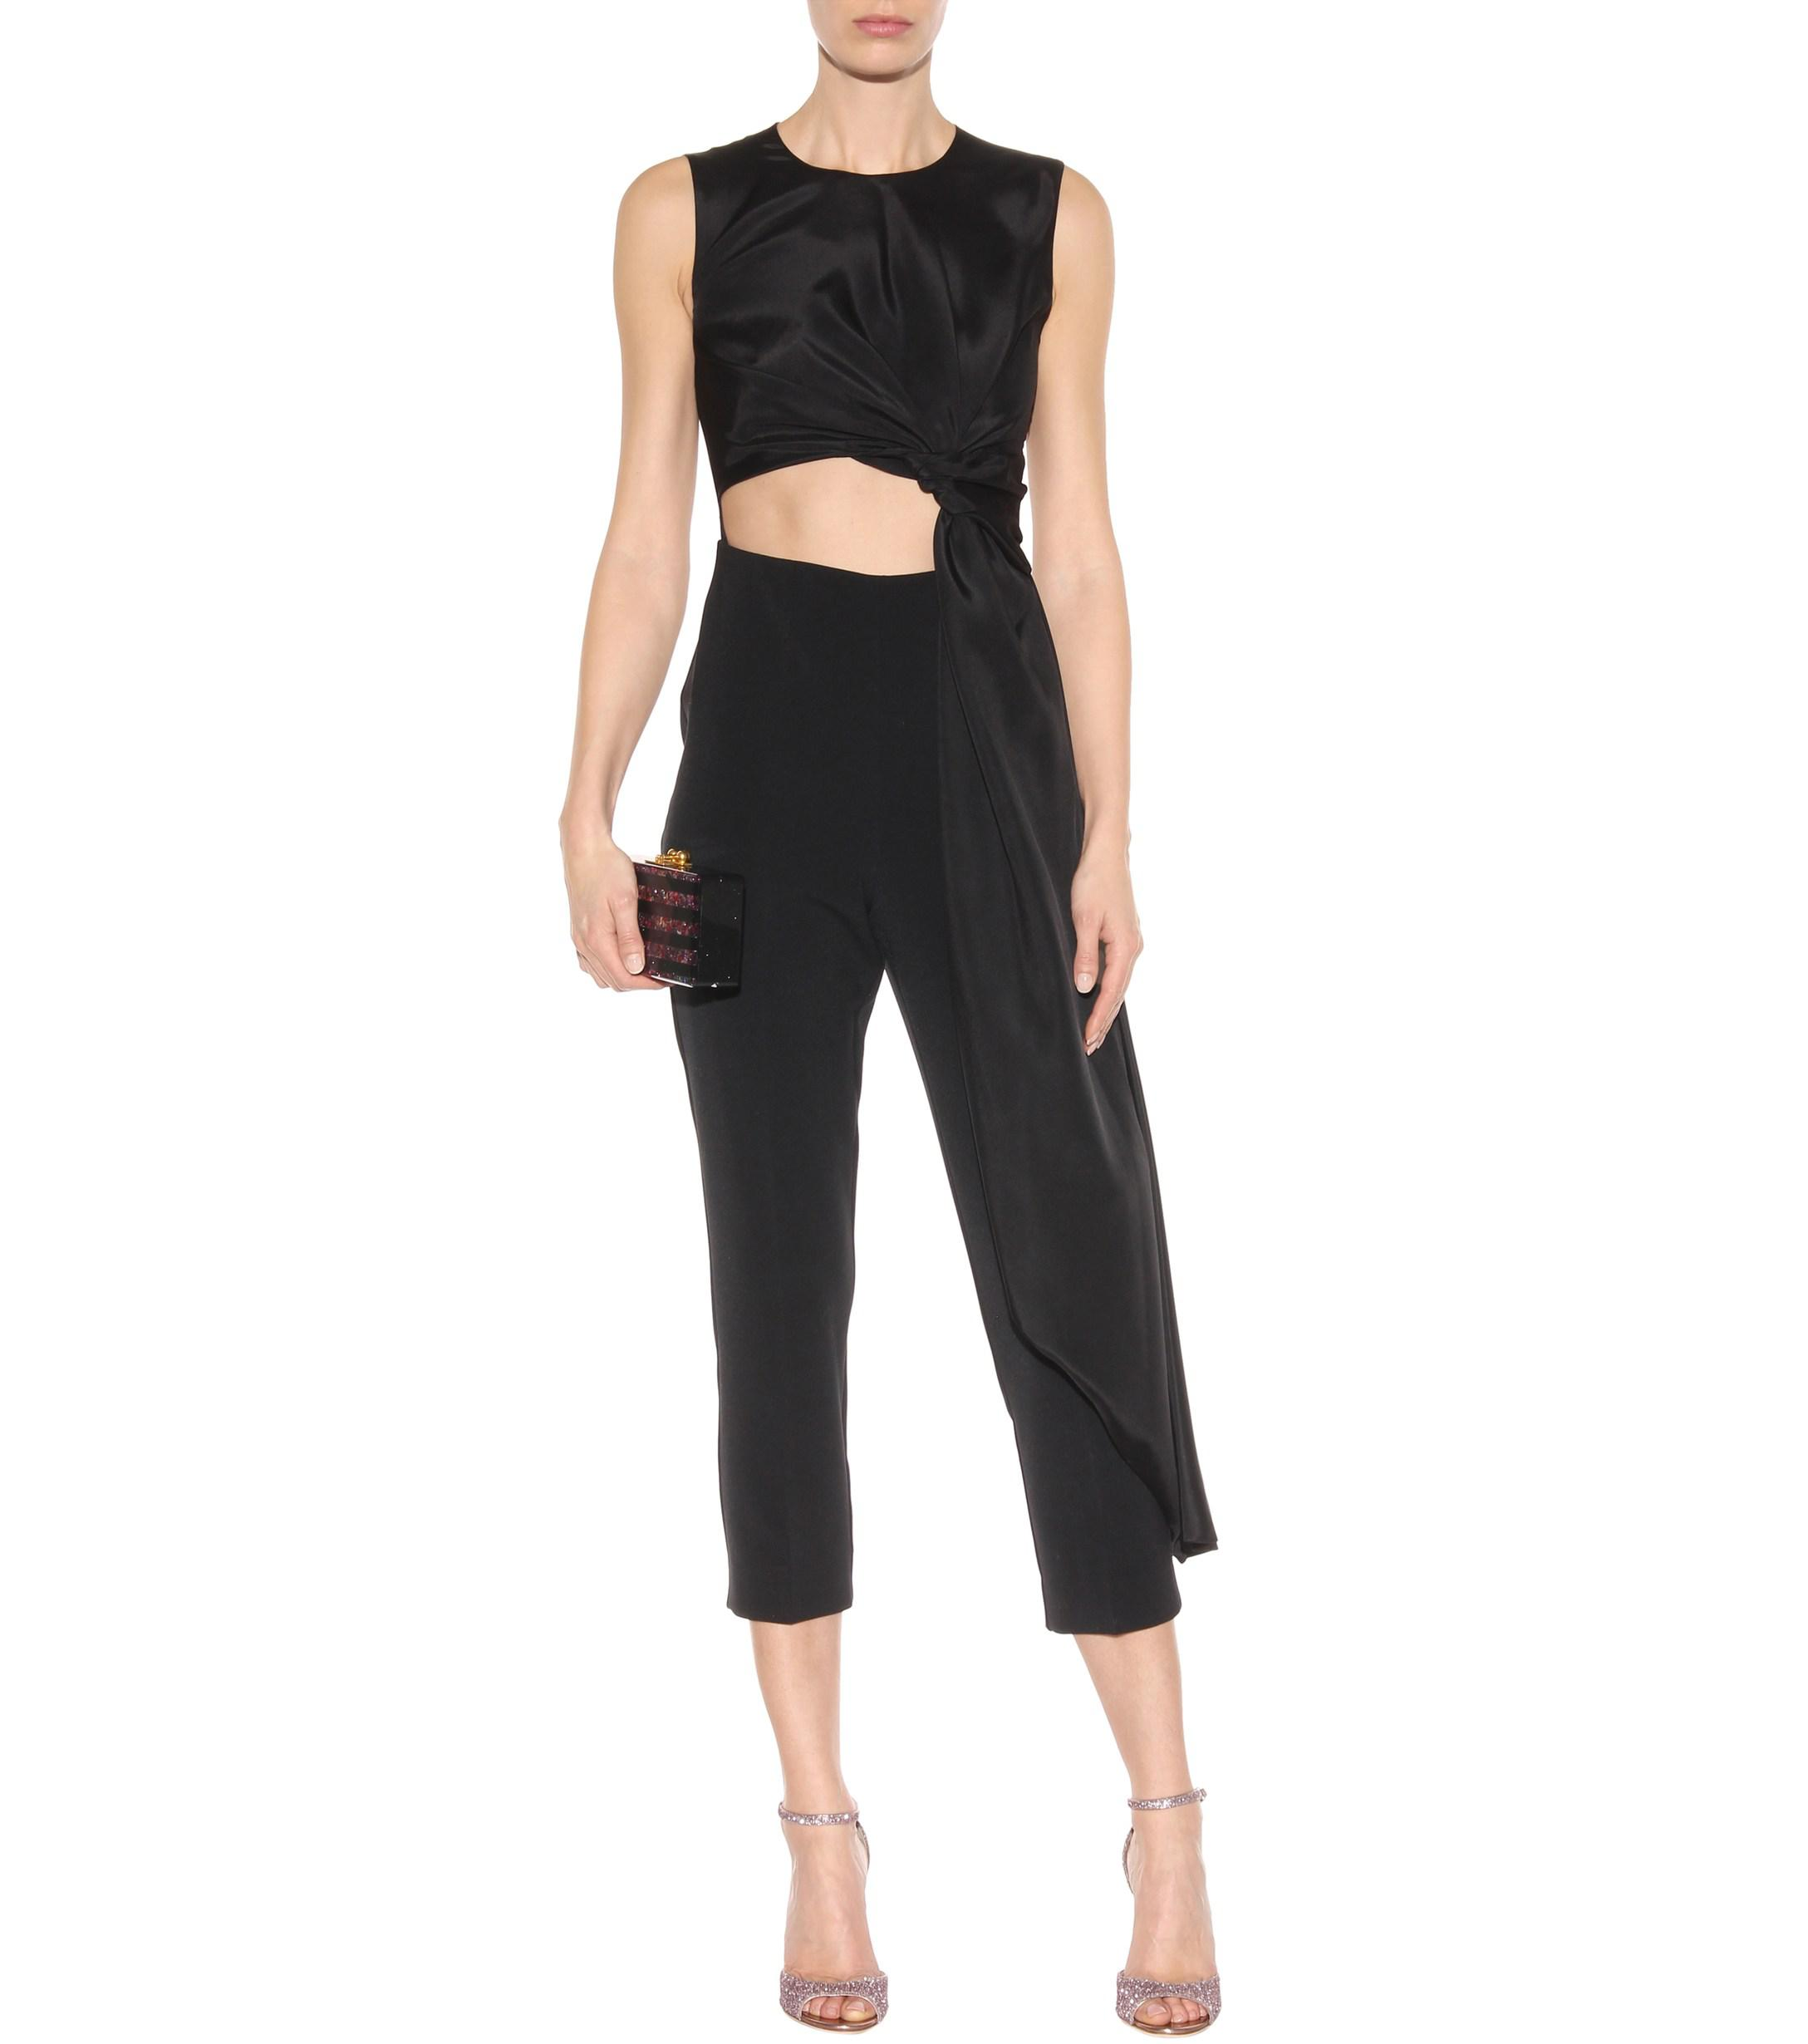 812723ab66c Roksanda - Black Thurloe Cut-out Jersey And Crêpe Jumpsuit - Lyst. View  fullscreen